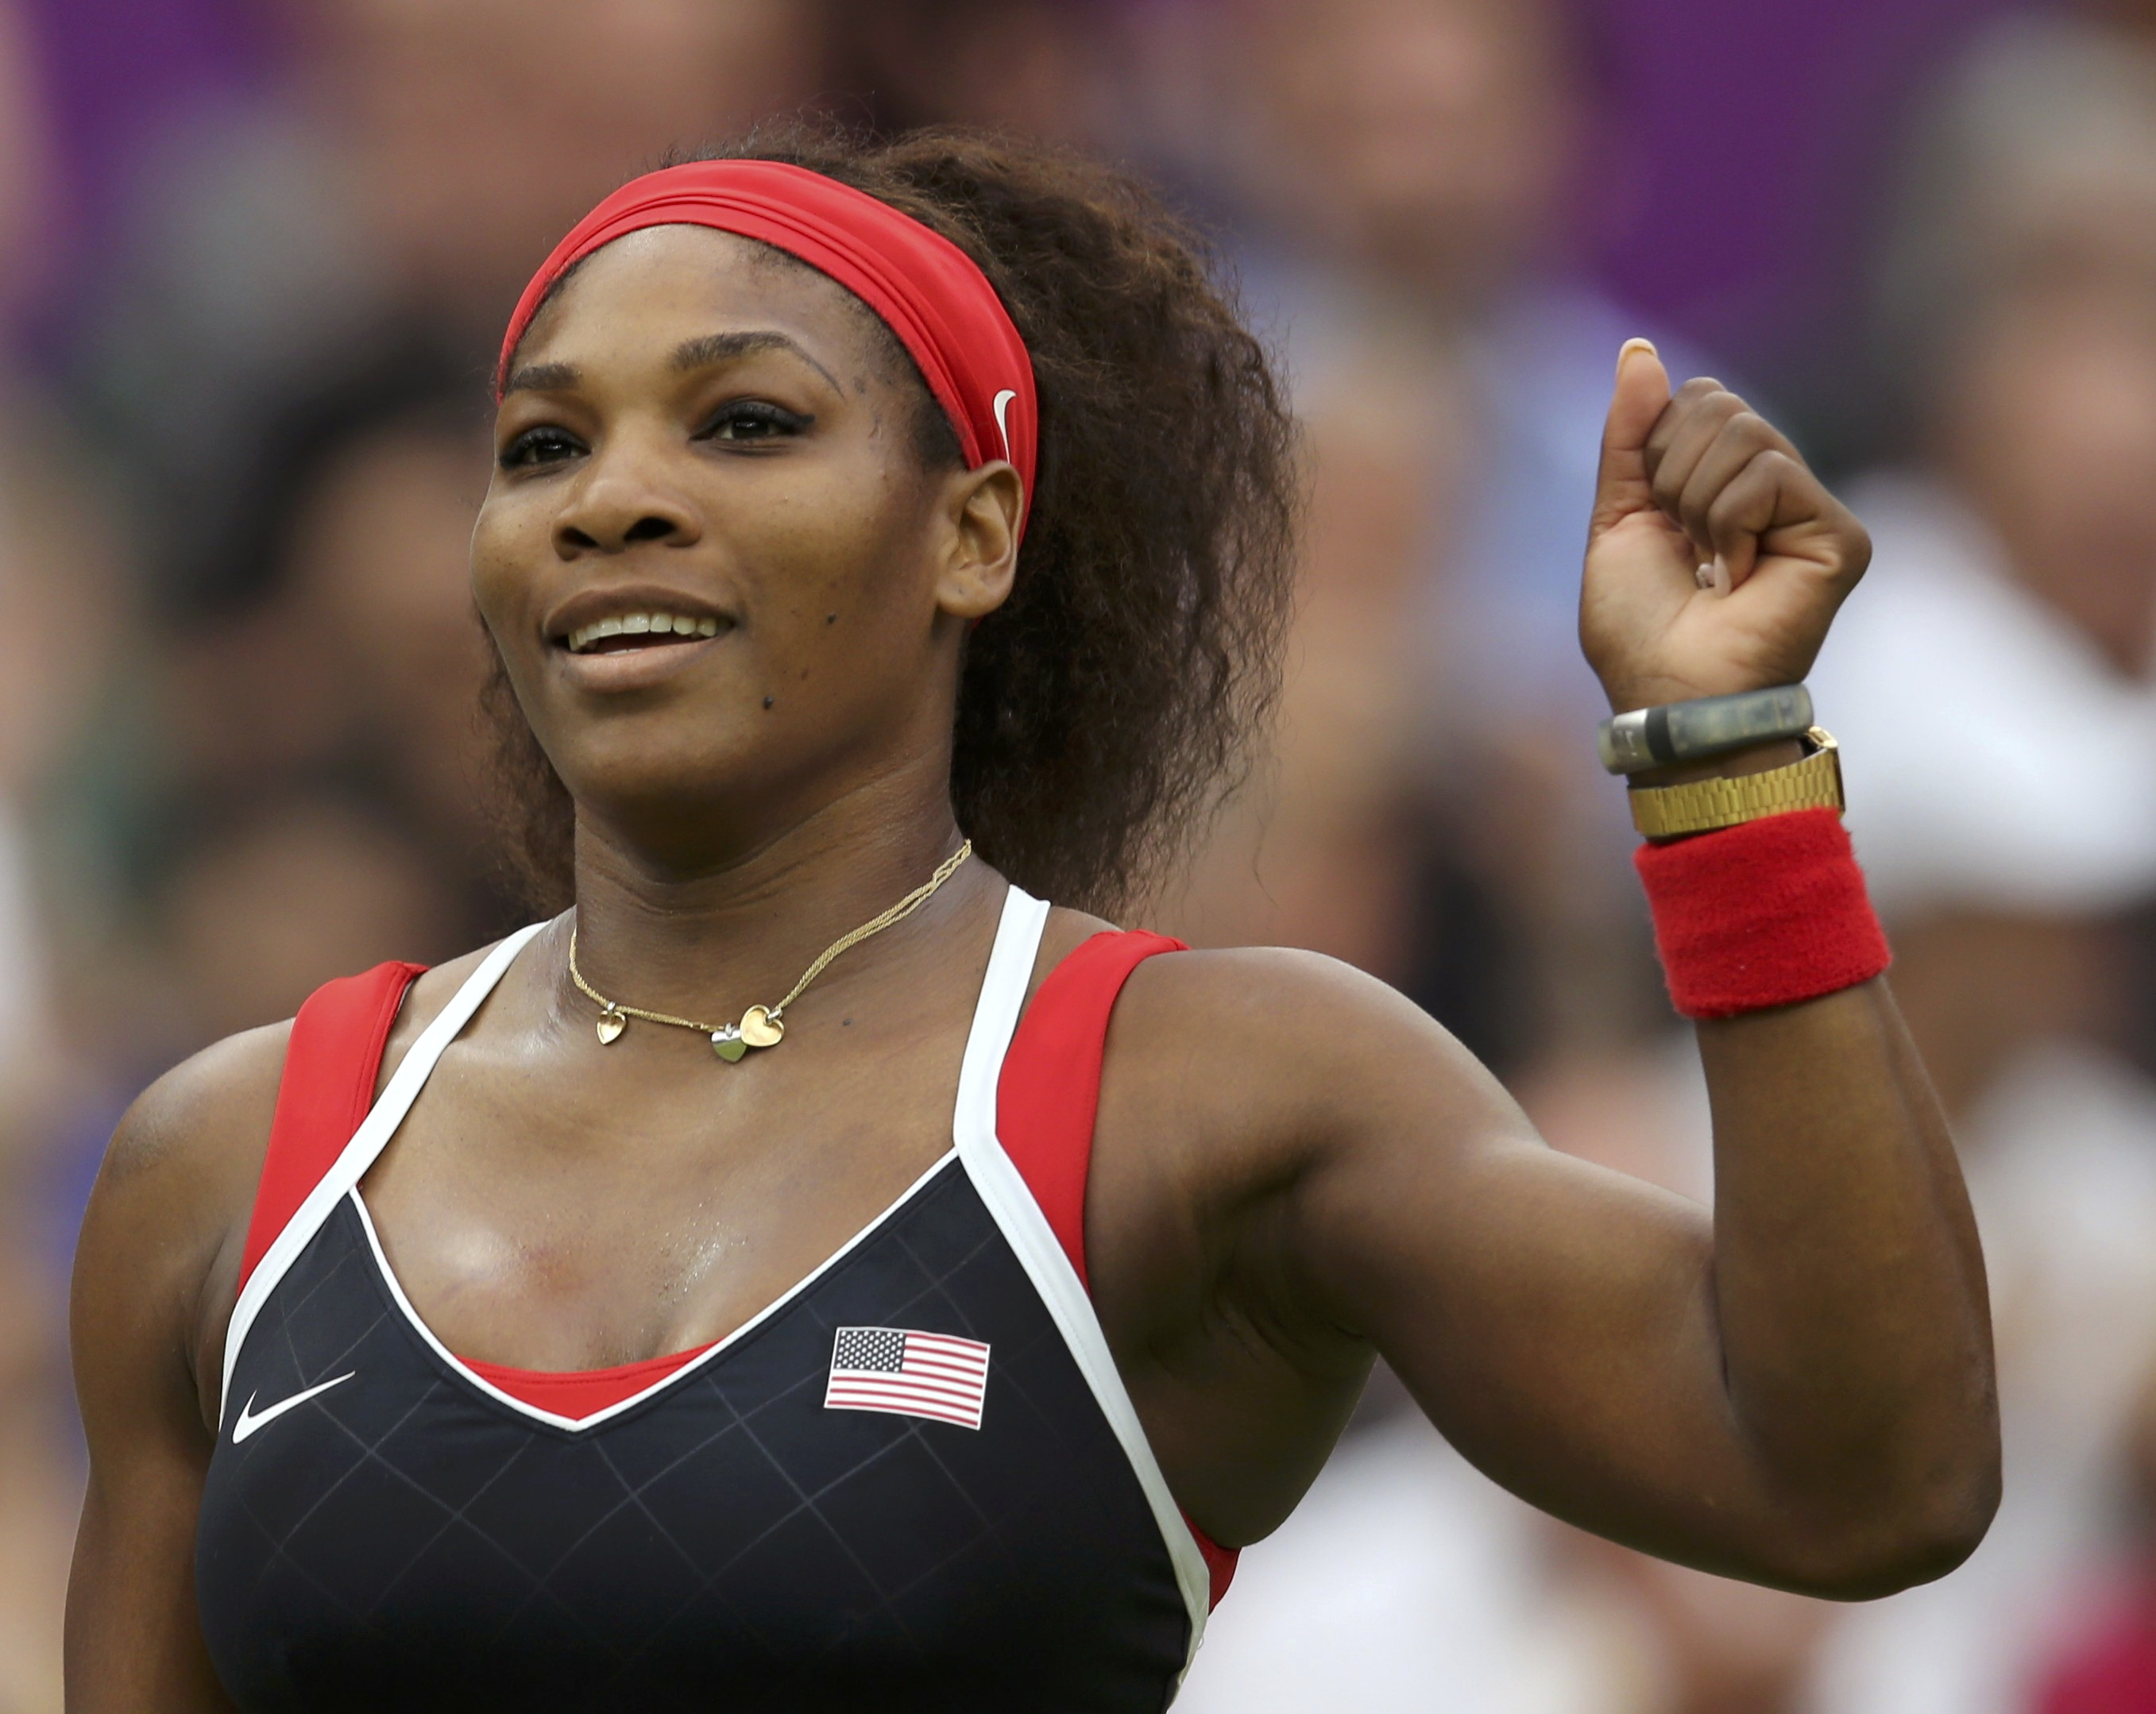 foto serena williams: